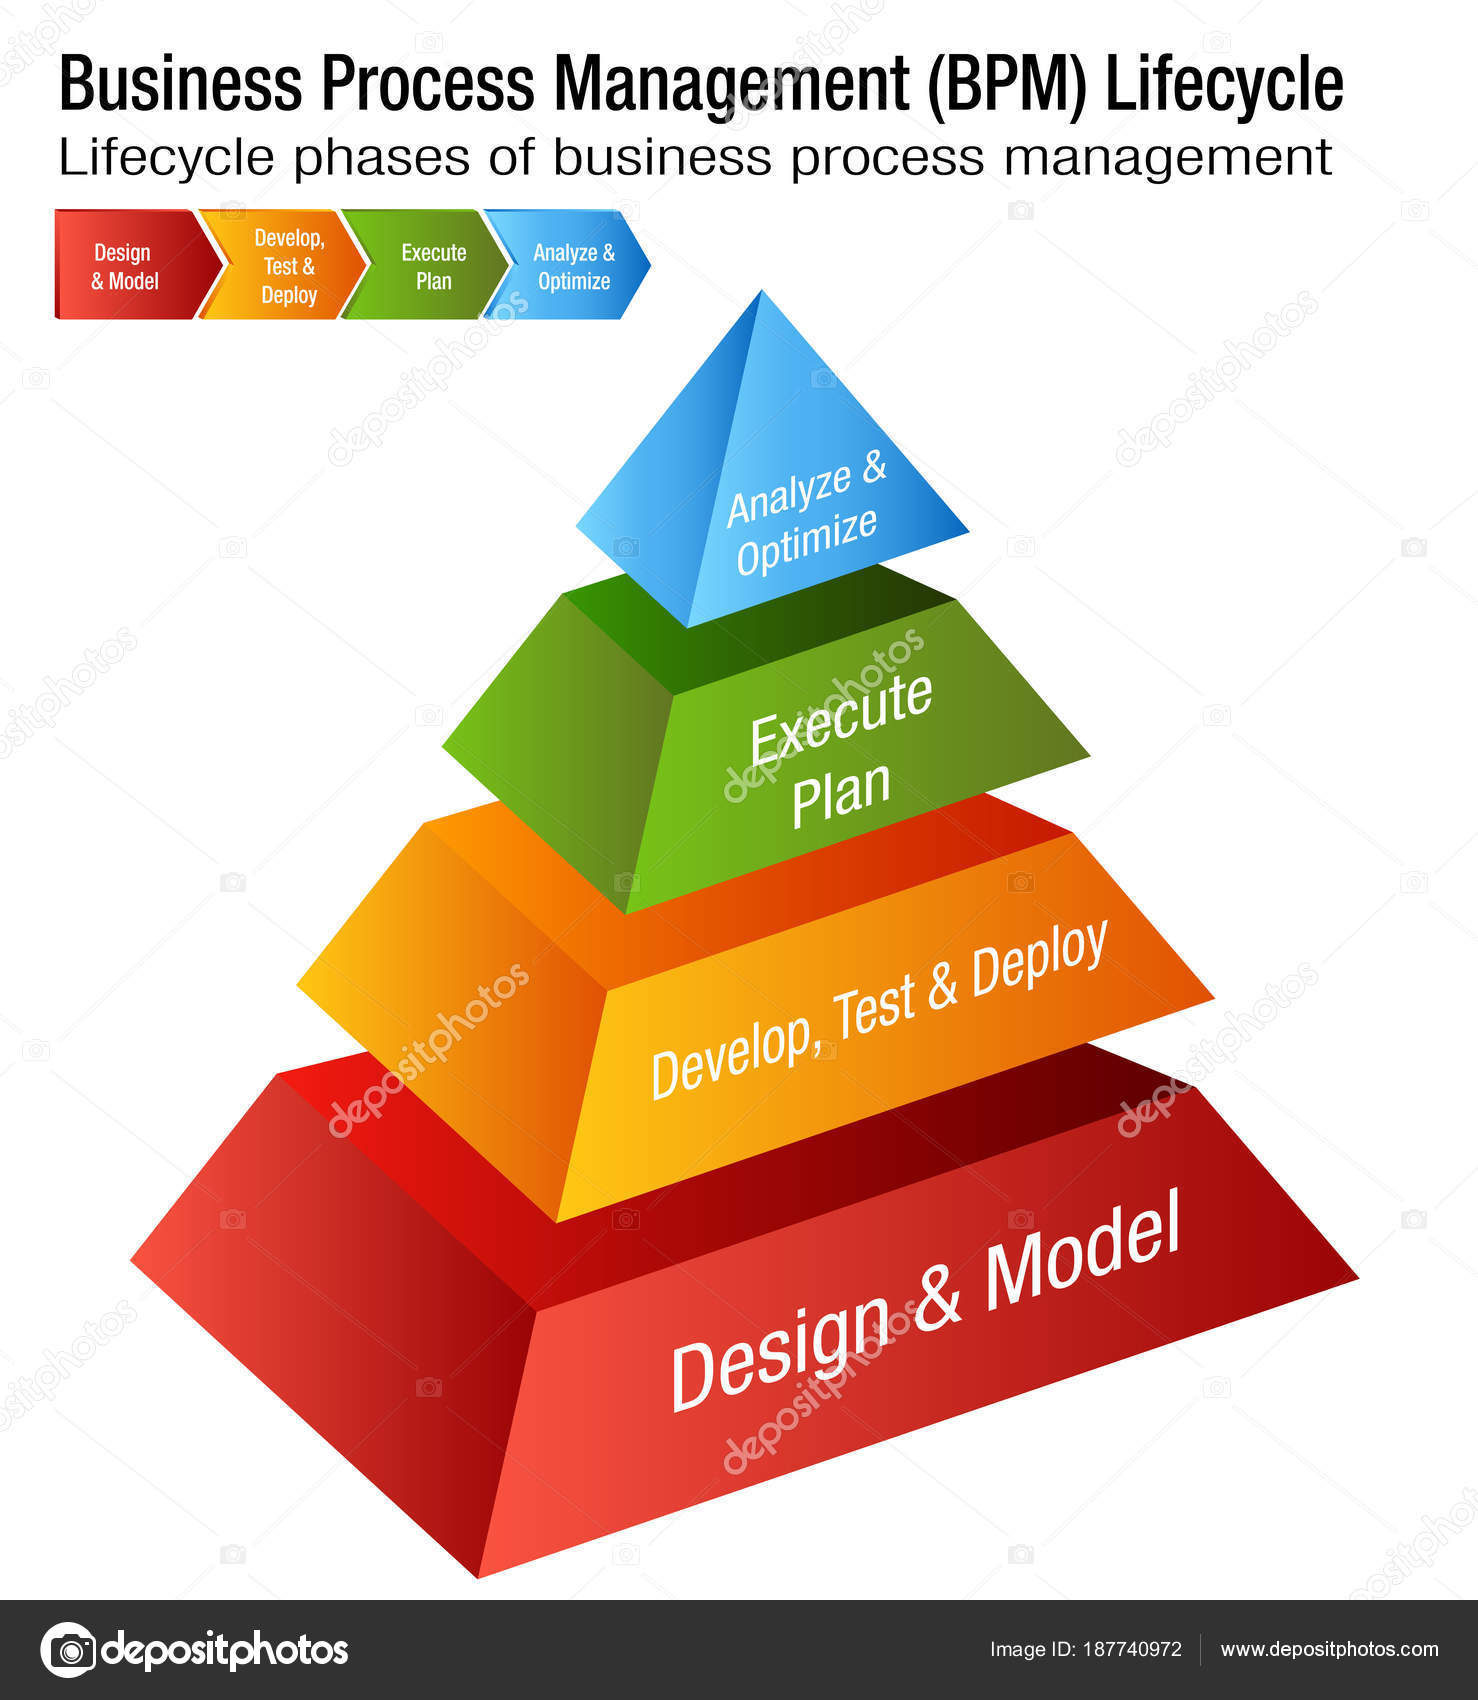 Business process management lifecycle bpm chart stock vector an image of a business process management lifecycle bpm chart vector by cteconsulting pooptronica Image collections